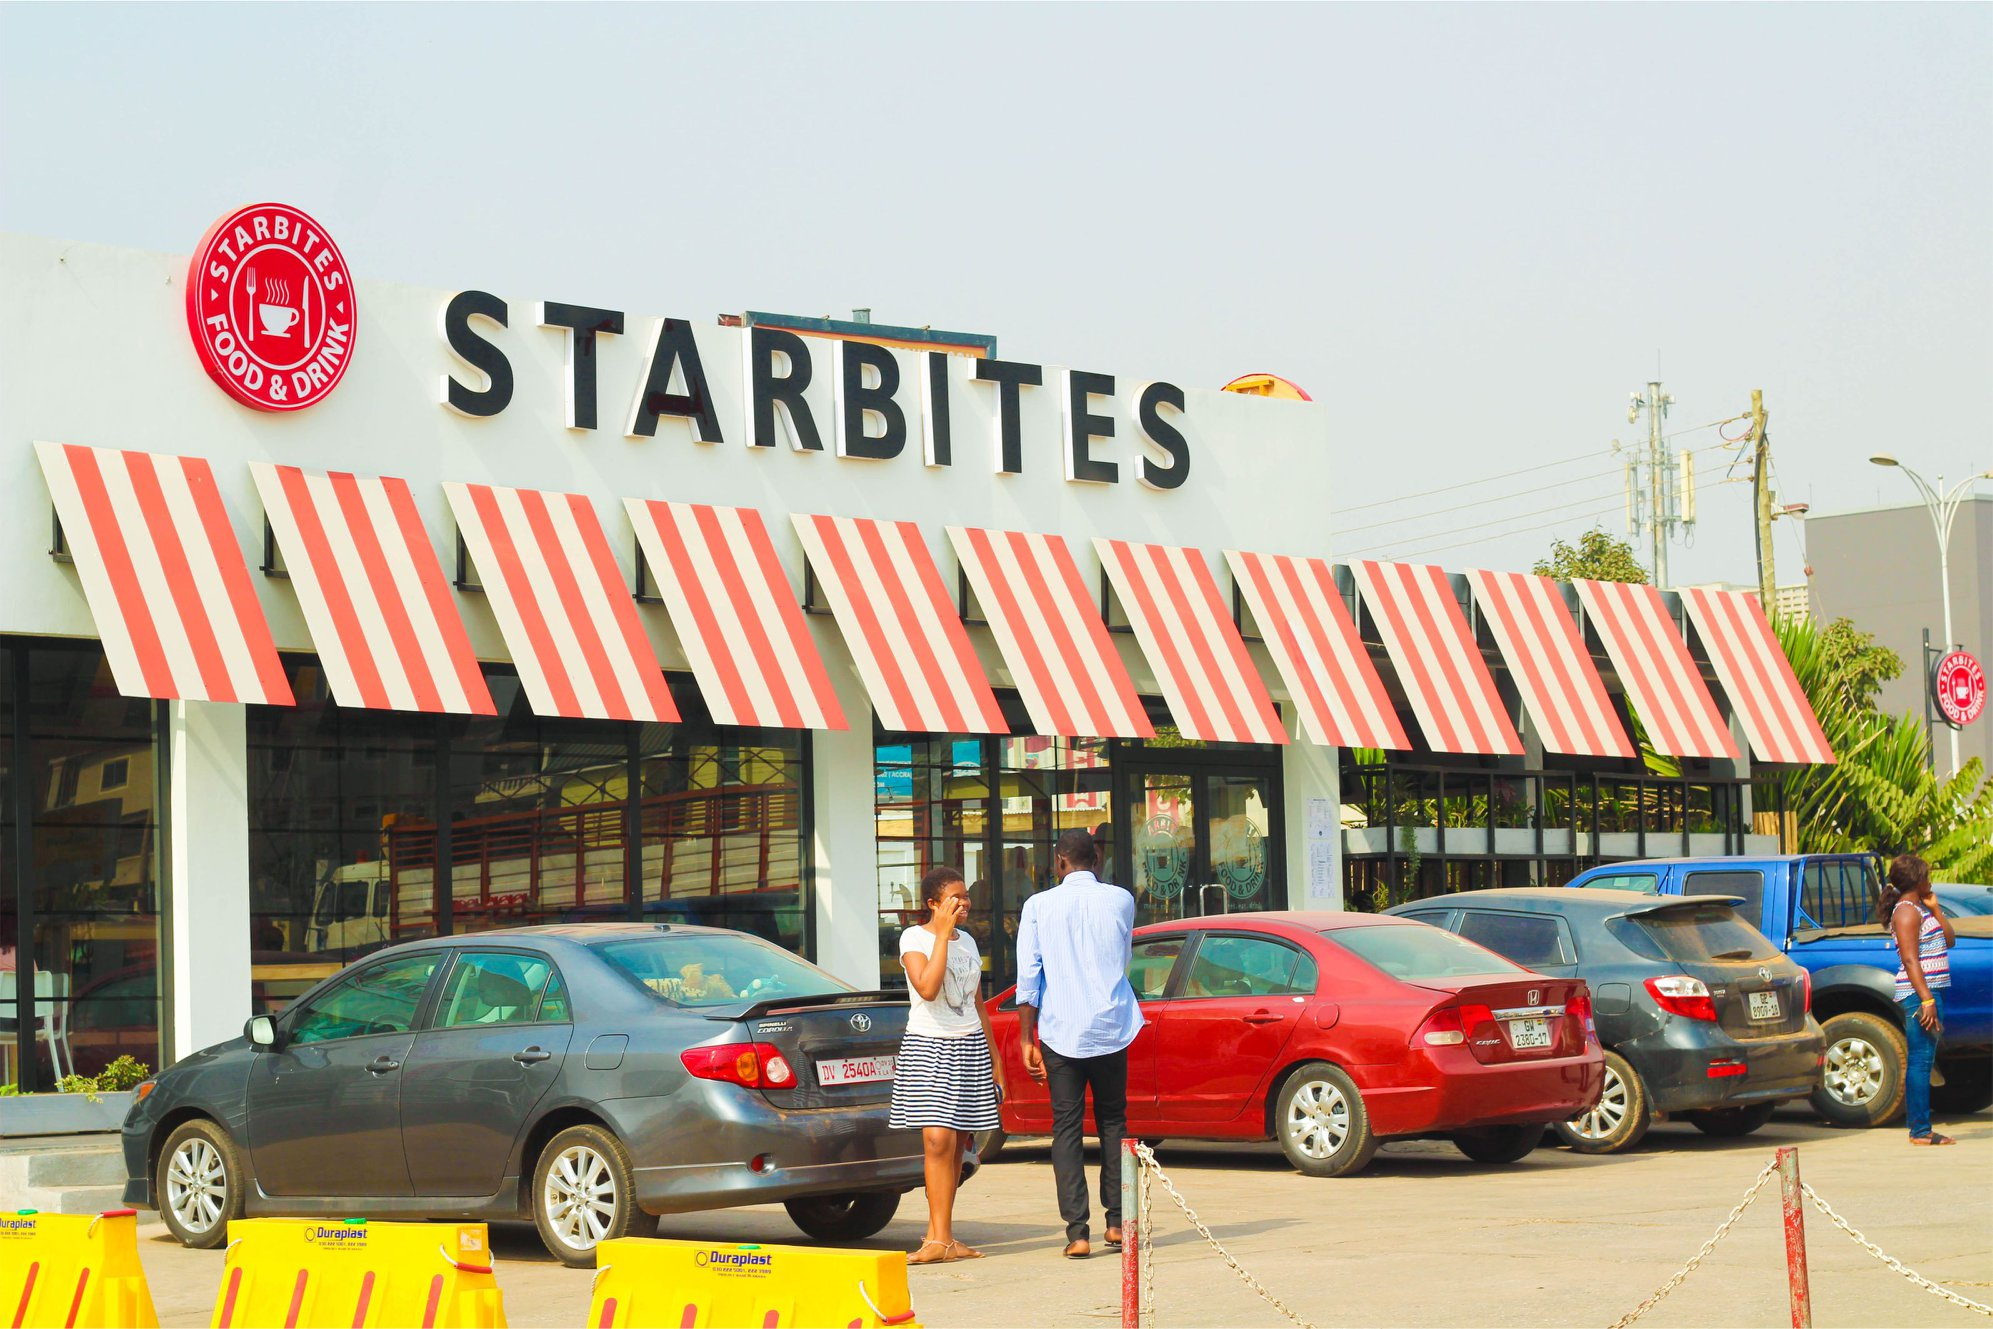 Starbites Food & Drink